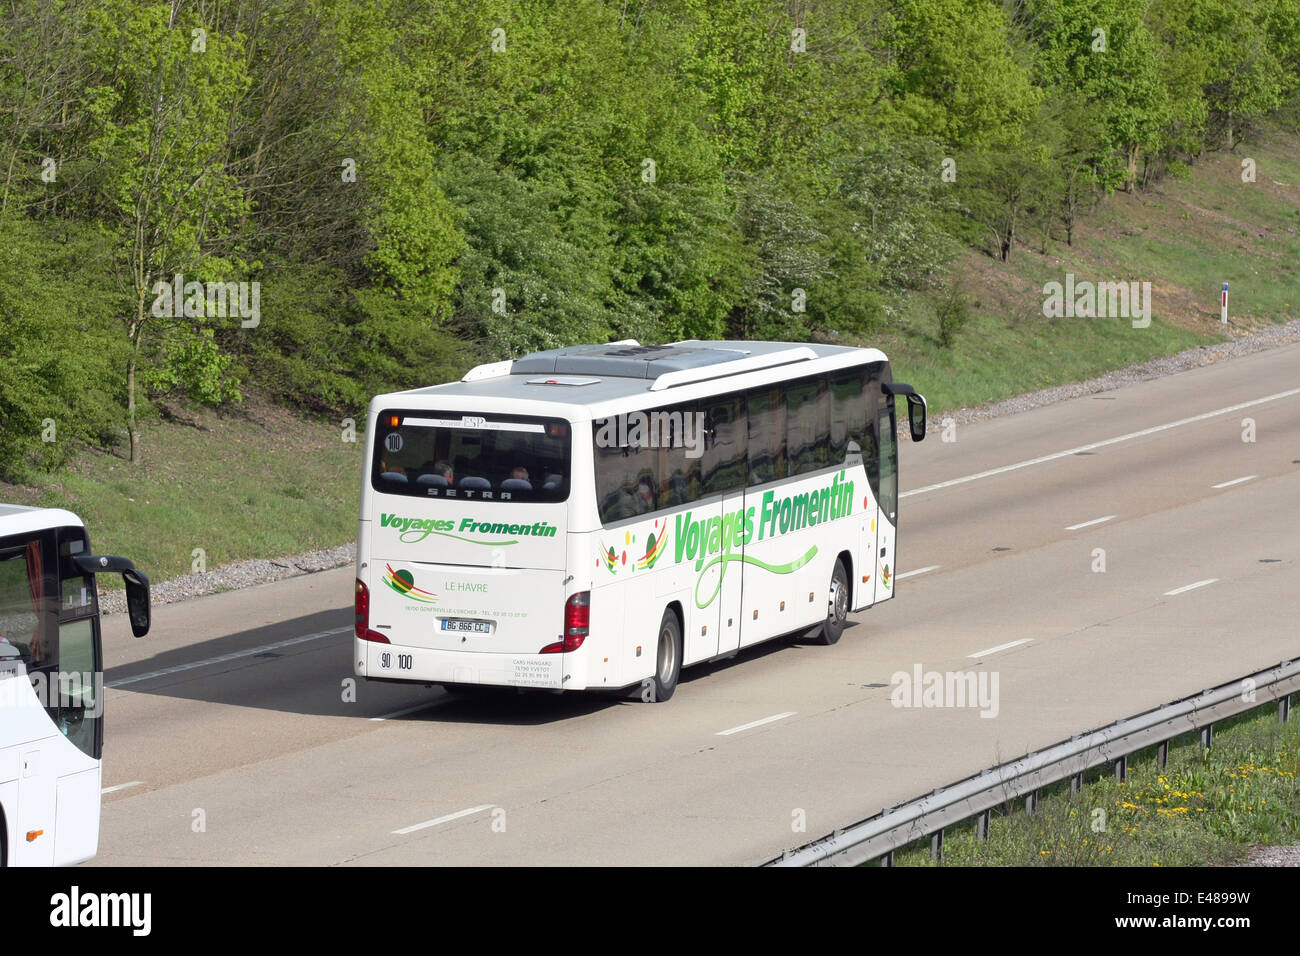 A Voyages Fromentin coach and part of another coach traveling along the m20 motorway in Kent, England - Stock Image